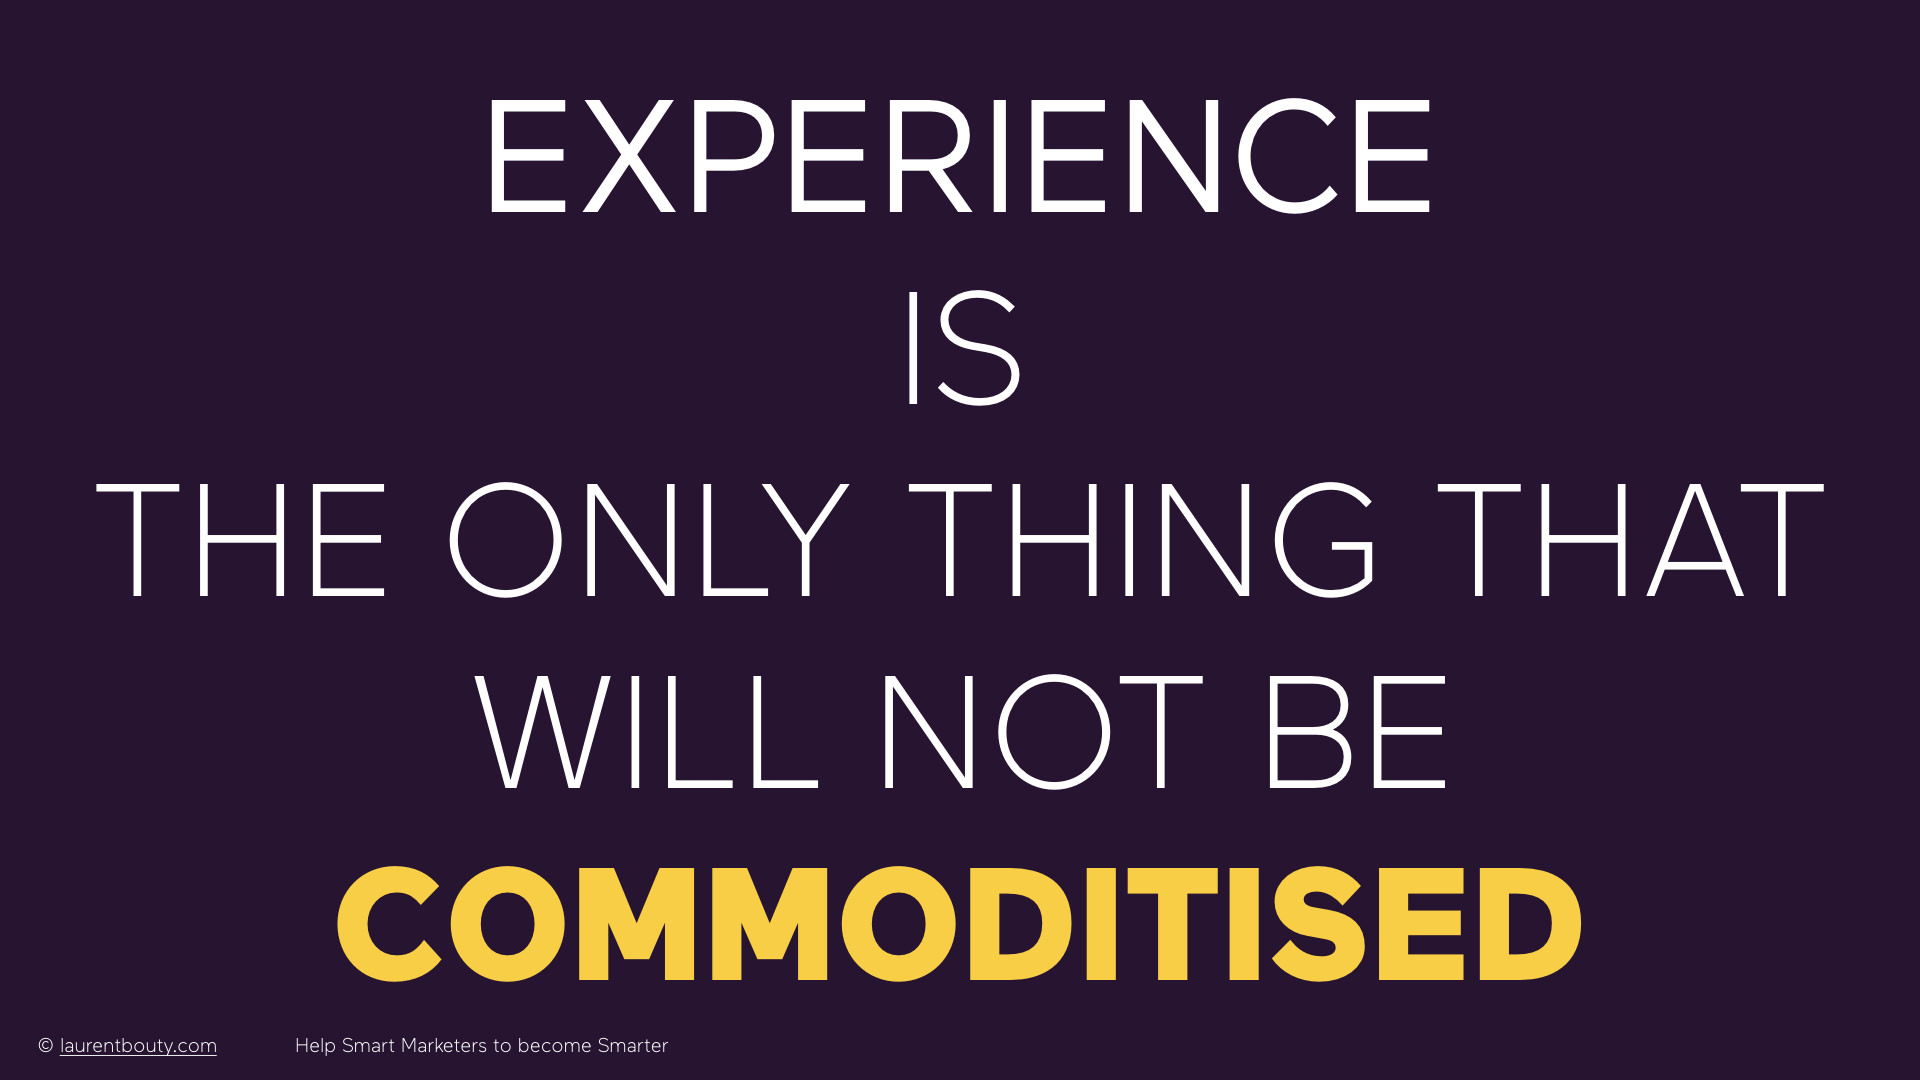 Marketers, Experience is the only thing that will not be commoditised